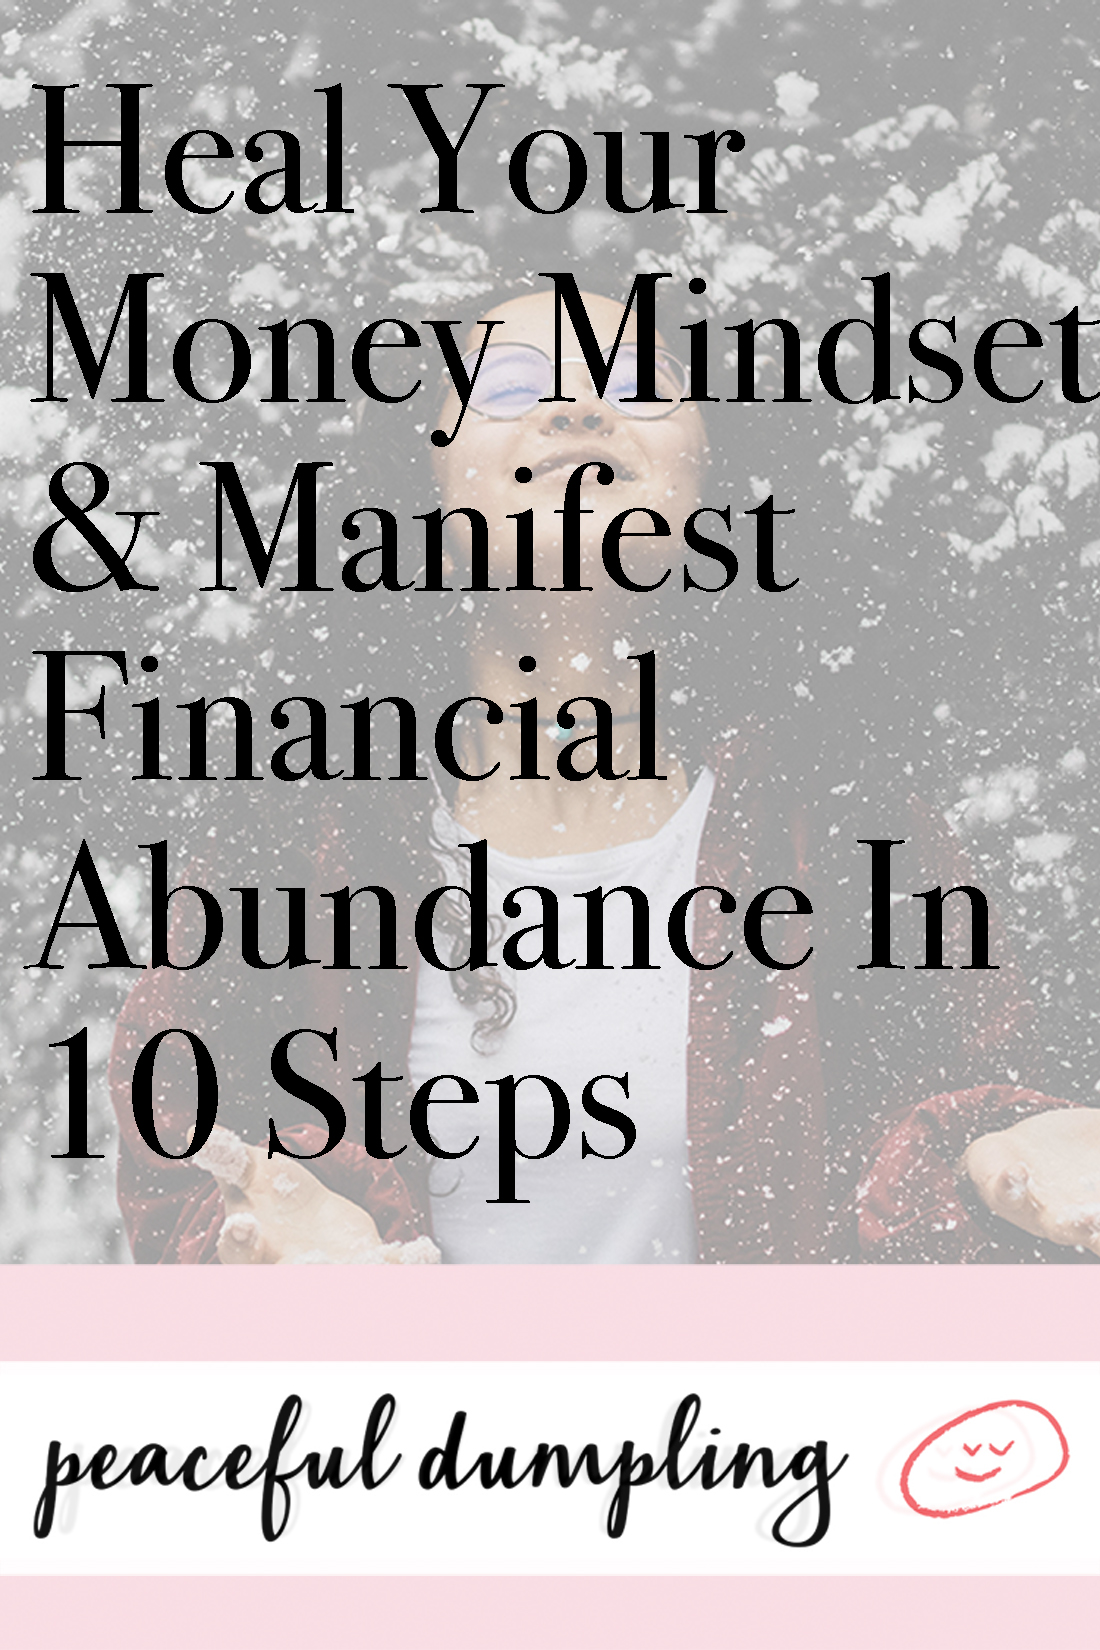 Heal Your Money Mindset & Manifest Financial Abundance In 10 Steps